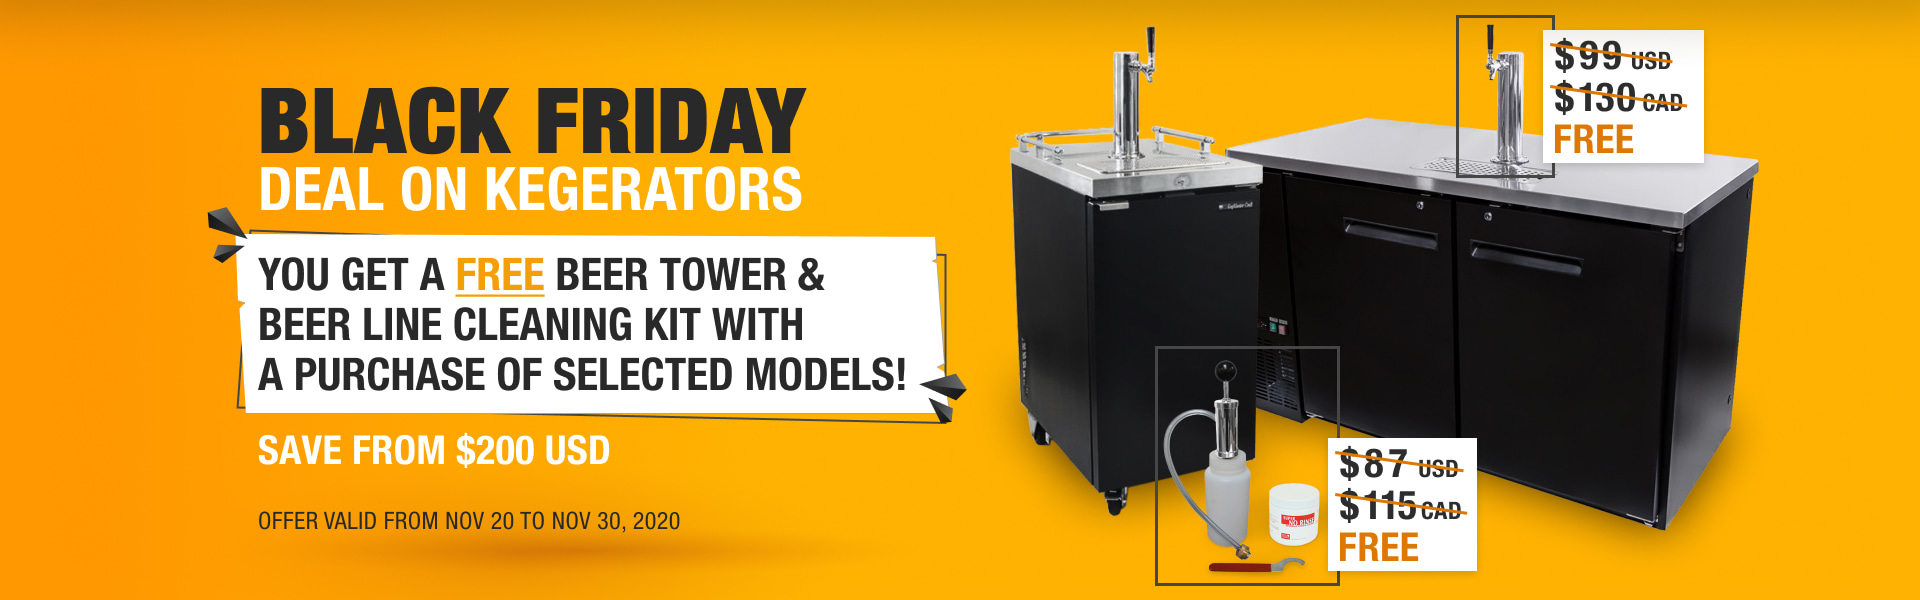 Black Friday Deals on Commercial Kegerators 2020